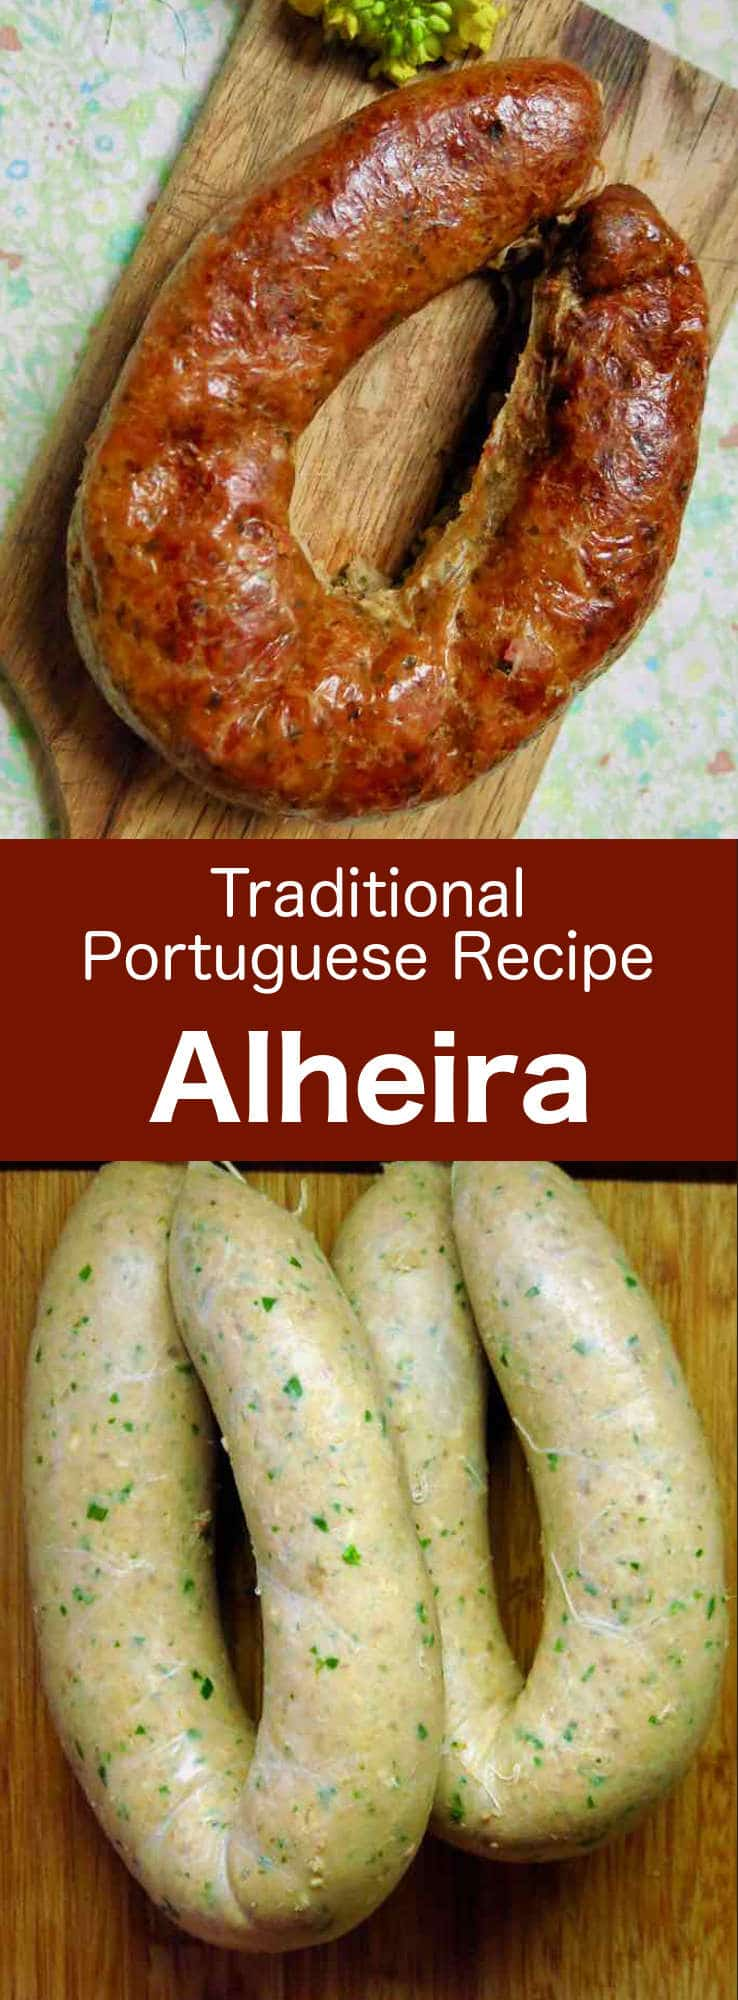 Alheira is a typical Portuguese sausage with a characteristic horseshoe shape. It is smoked and prepared mainly with poultry, bread, olive oil, garlic and hot peppers. #Portugal #PortugueseRecipe #Sausage #SausageRecipe #WorldCuisine #196flavors